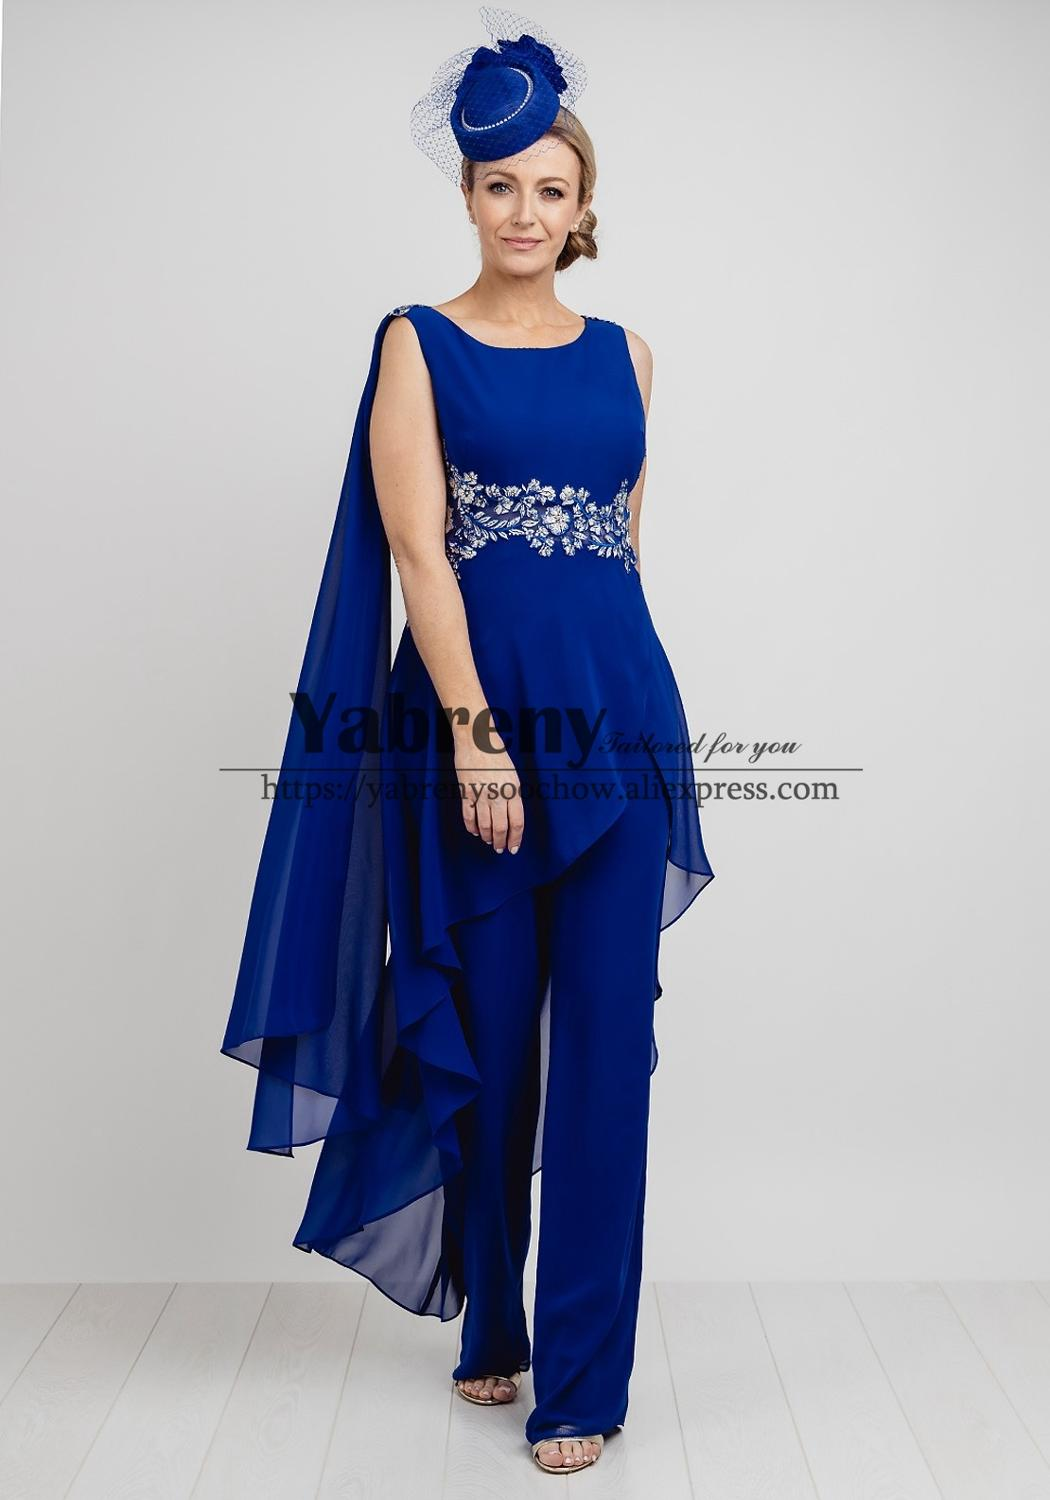 Modern Mother Of The Bride Pant Suit Dress 2020 New Arrival Royal Blue Chiffon Trousers Set